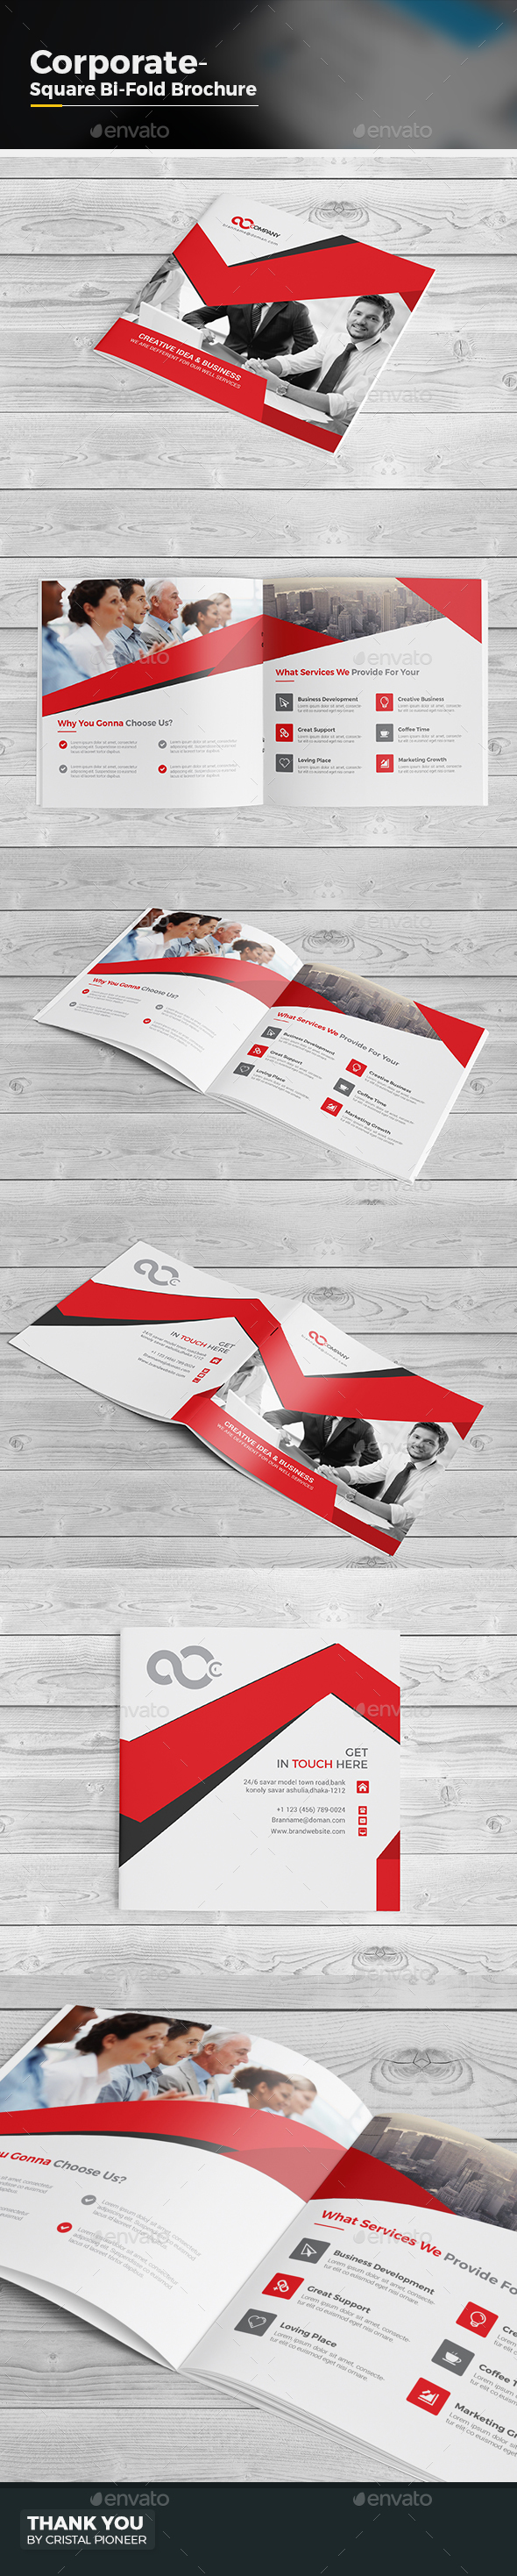 Square Bi Fold Brochure - Corporate Brochures